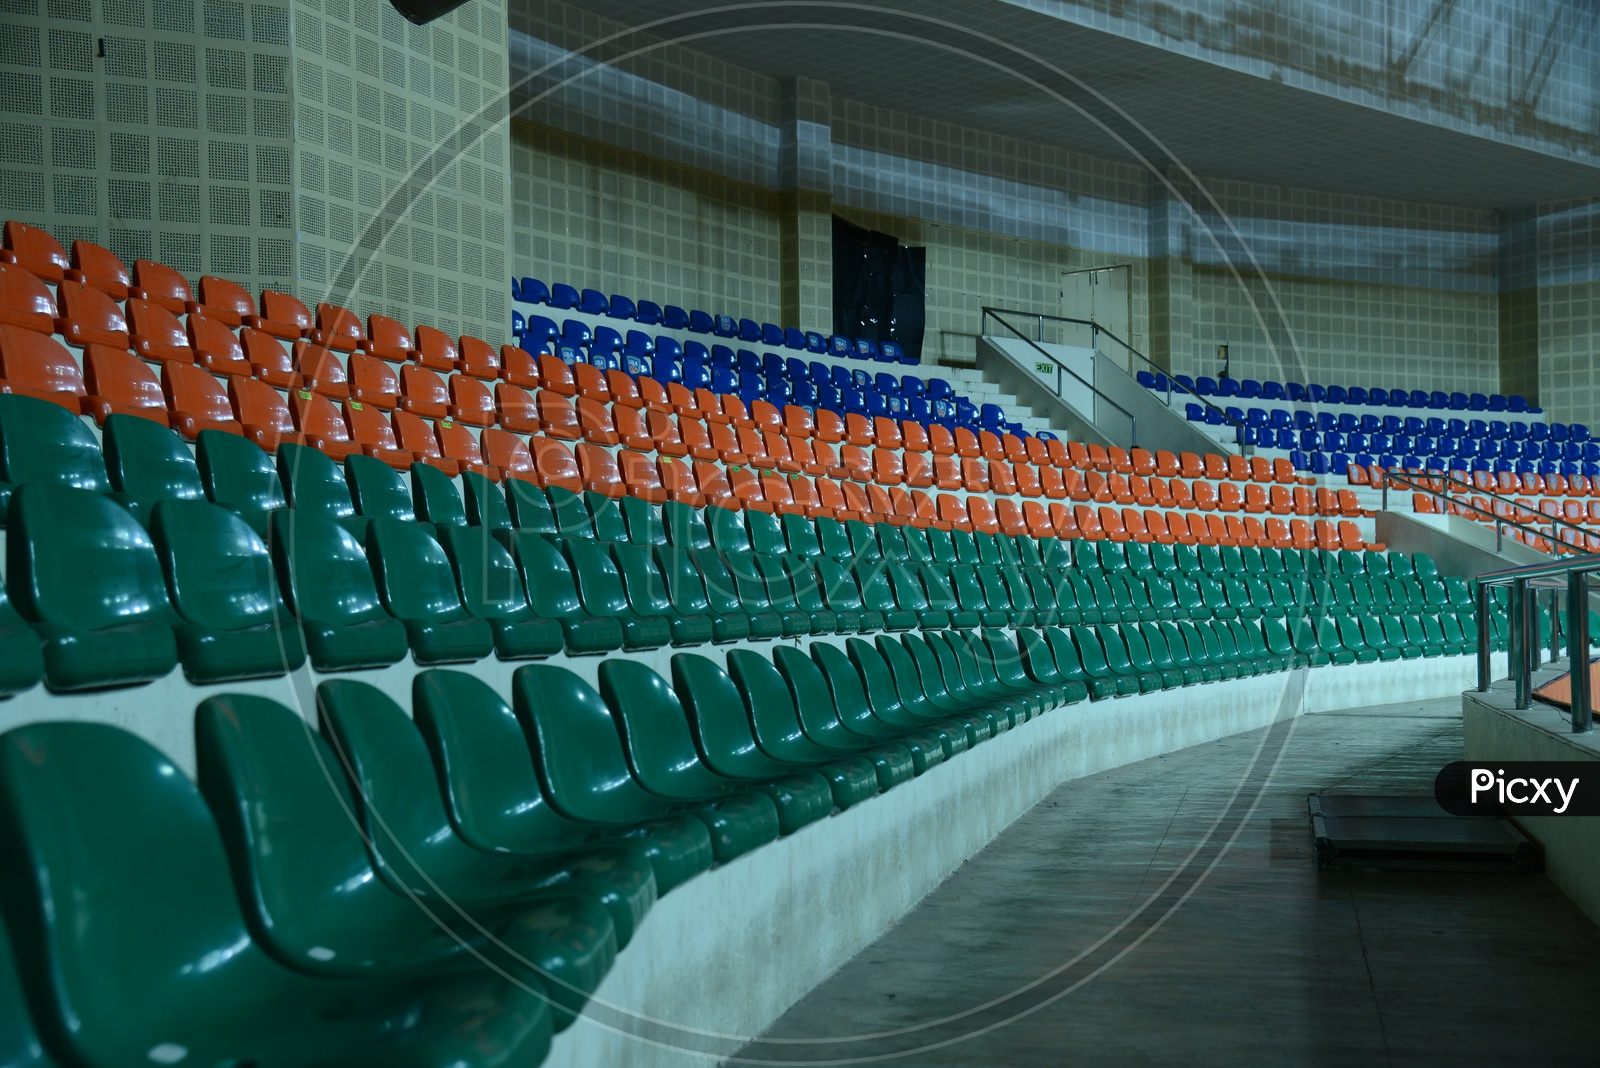 Chairs in an Indoor Stadium